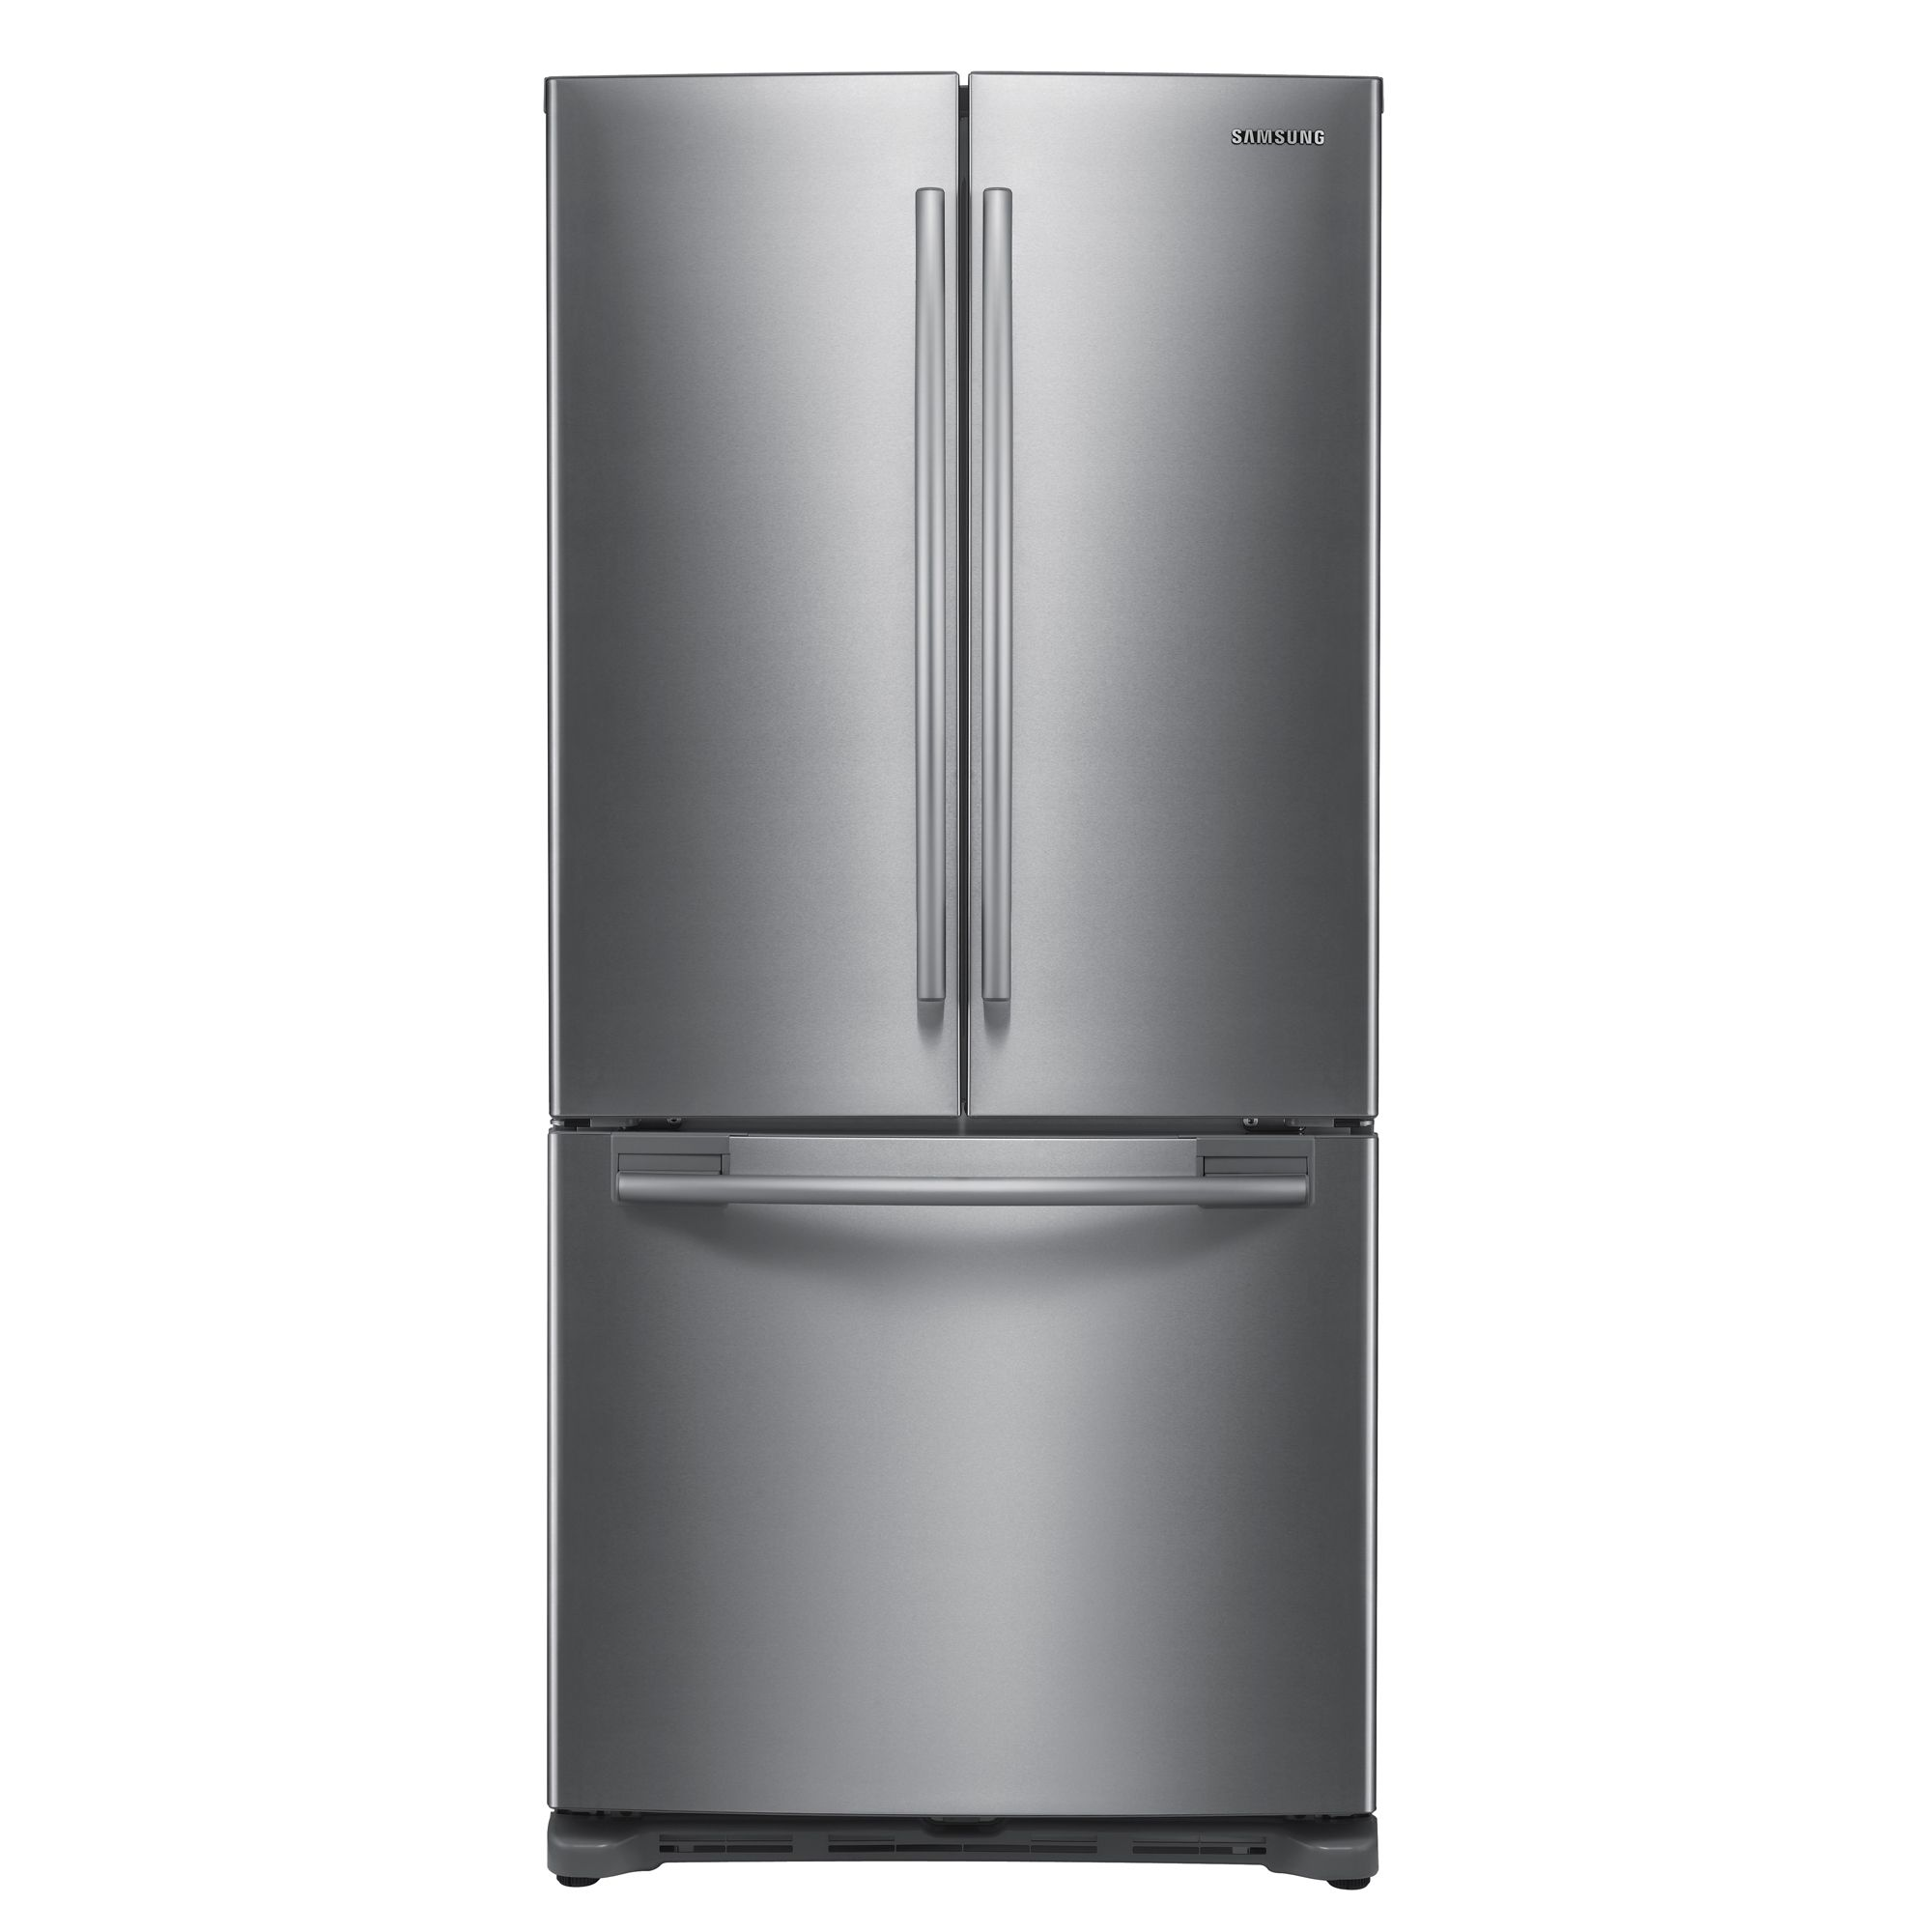 Samsung 20.0 cu. ft. French-Door Bottom-Freezer Refrigerator